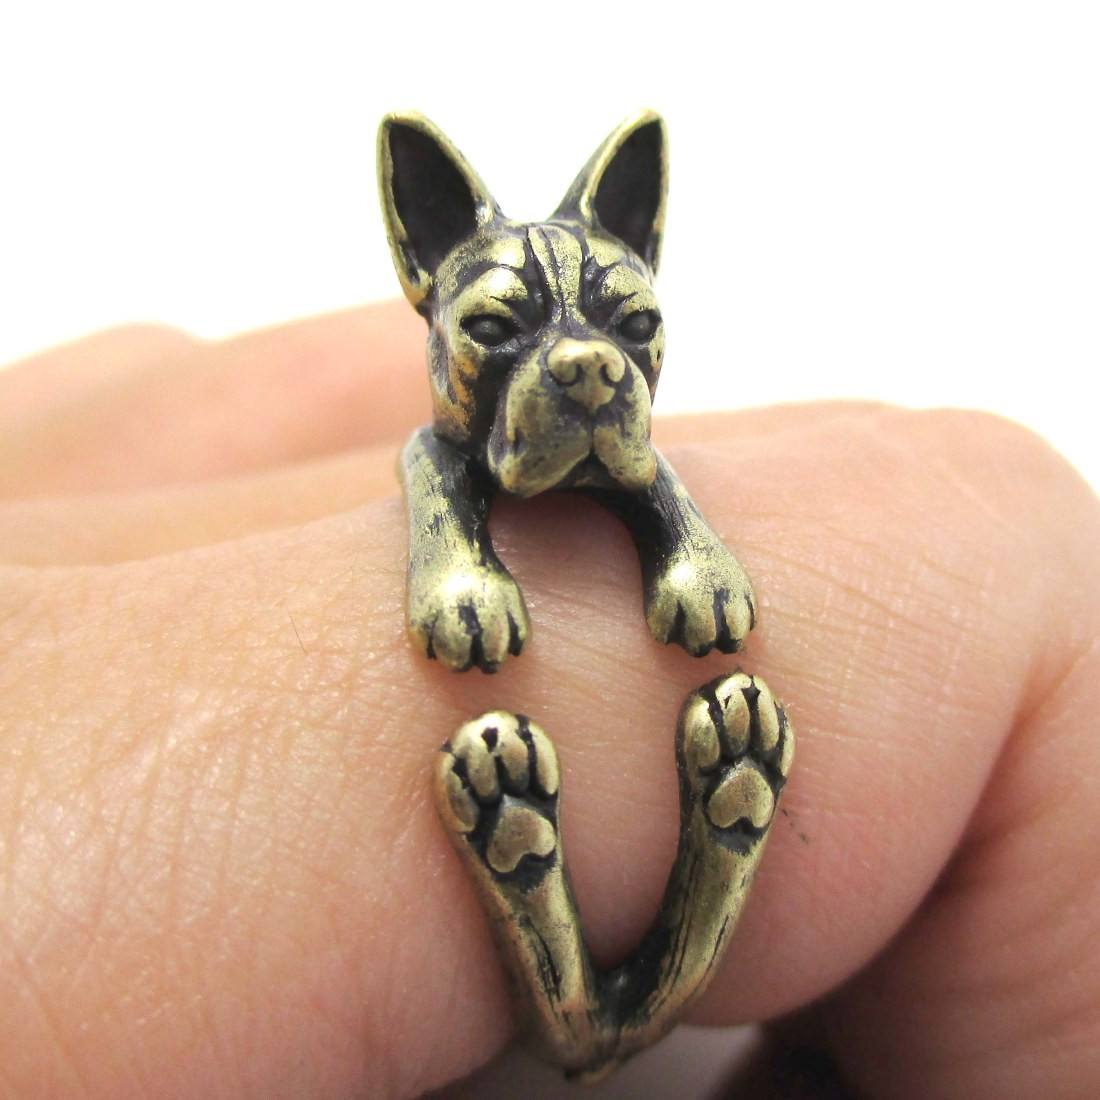 Boston Terrier Puppy Shaped Animal Wrap Ring in Brass